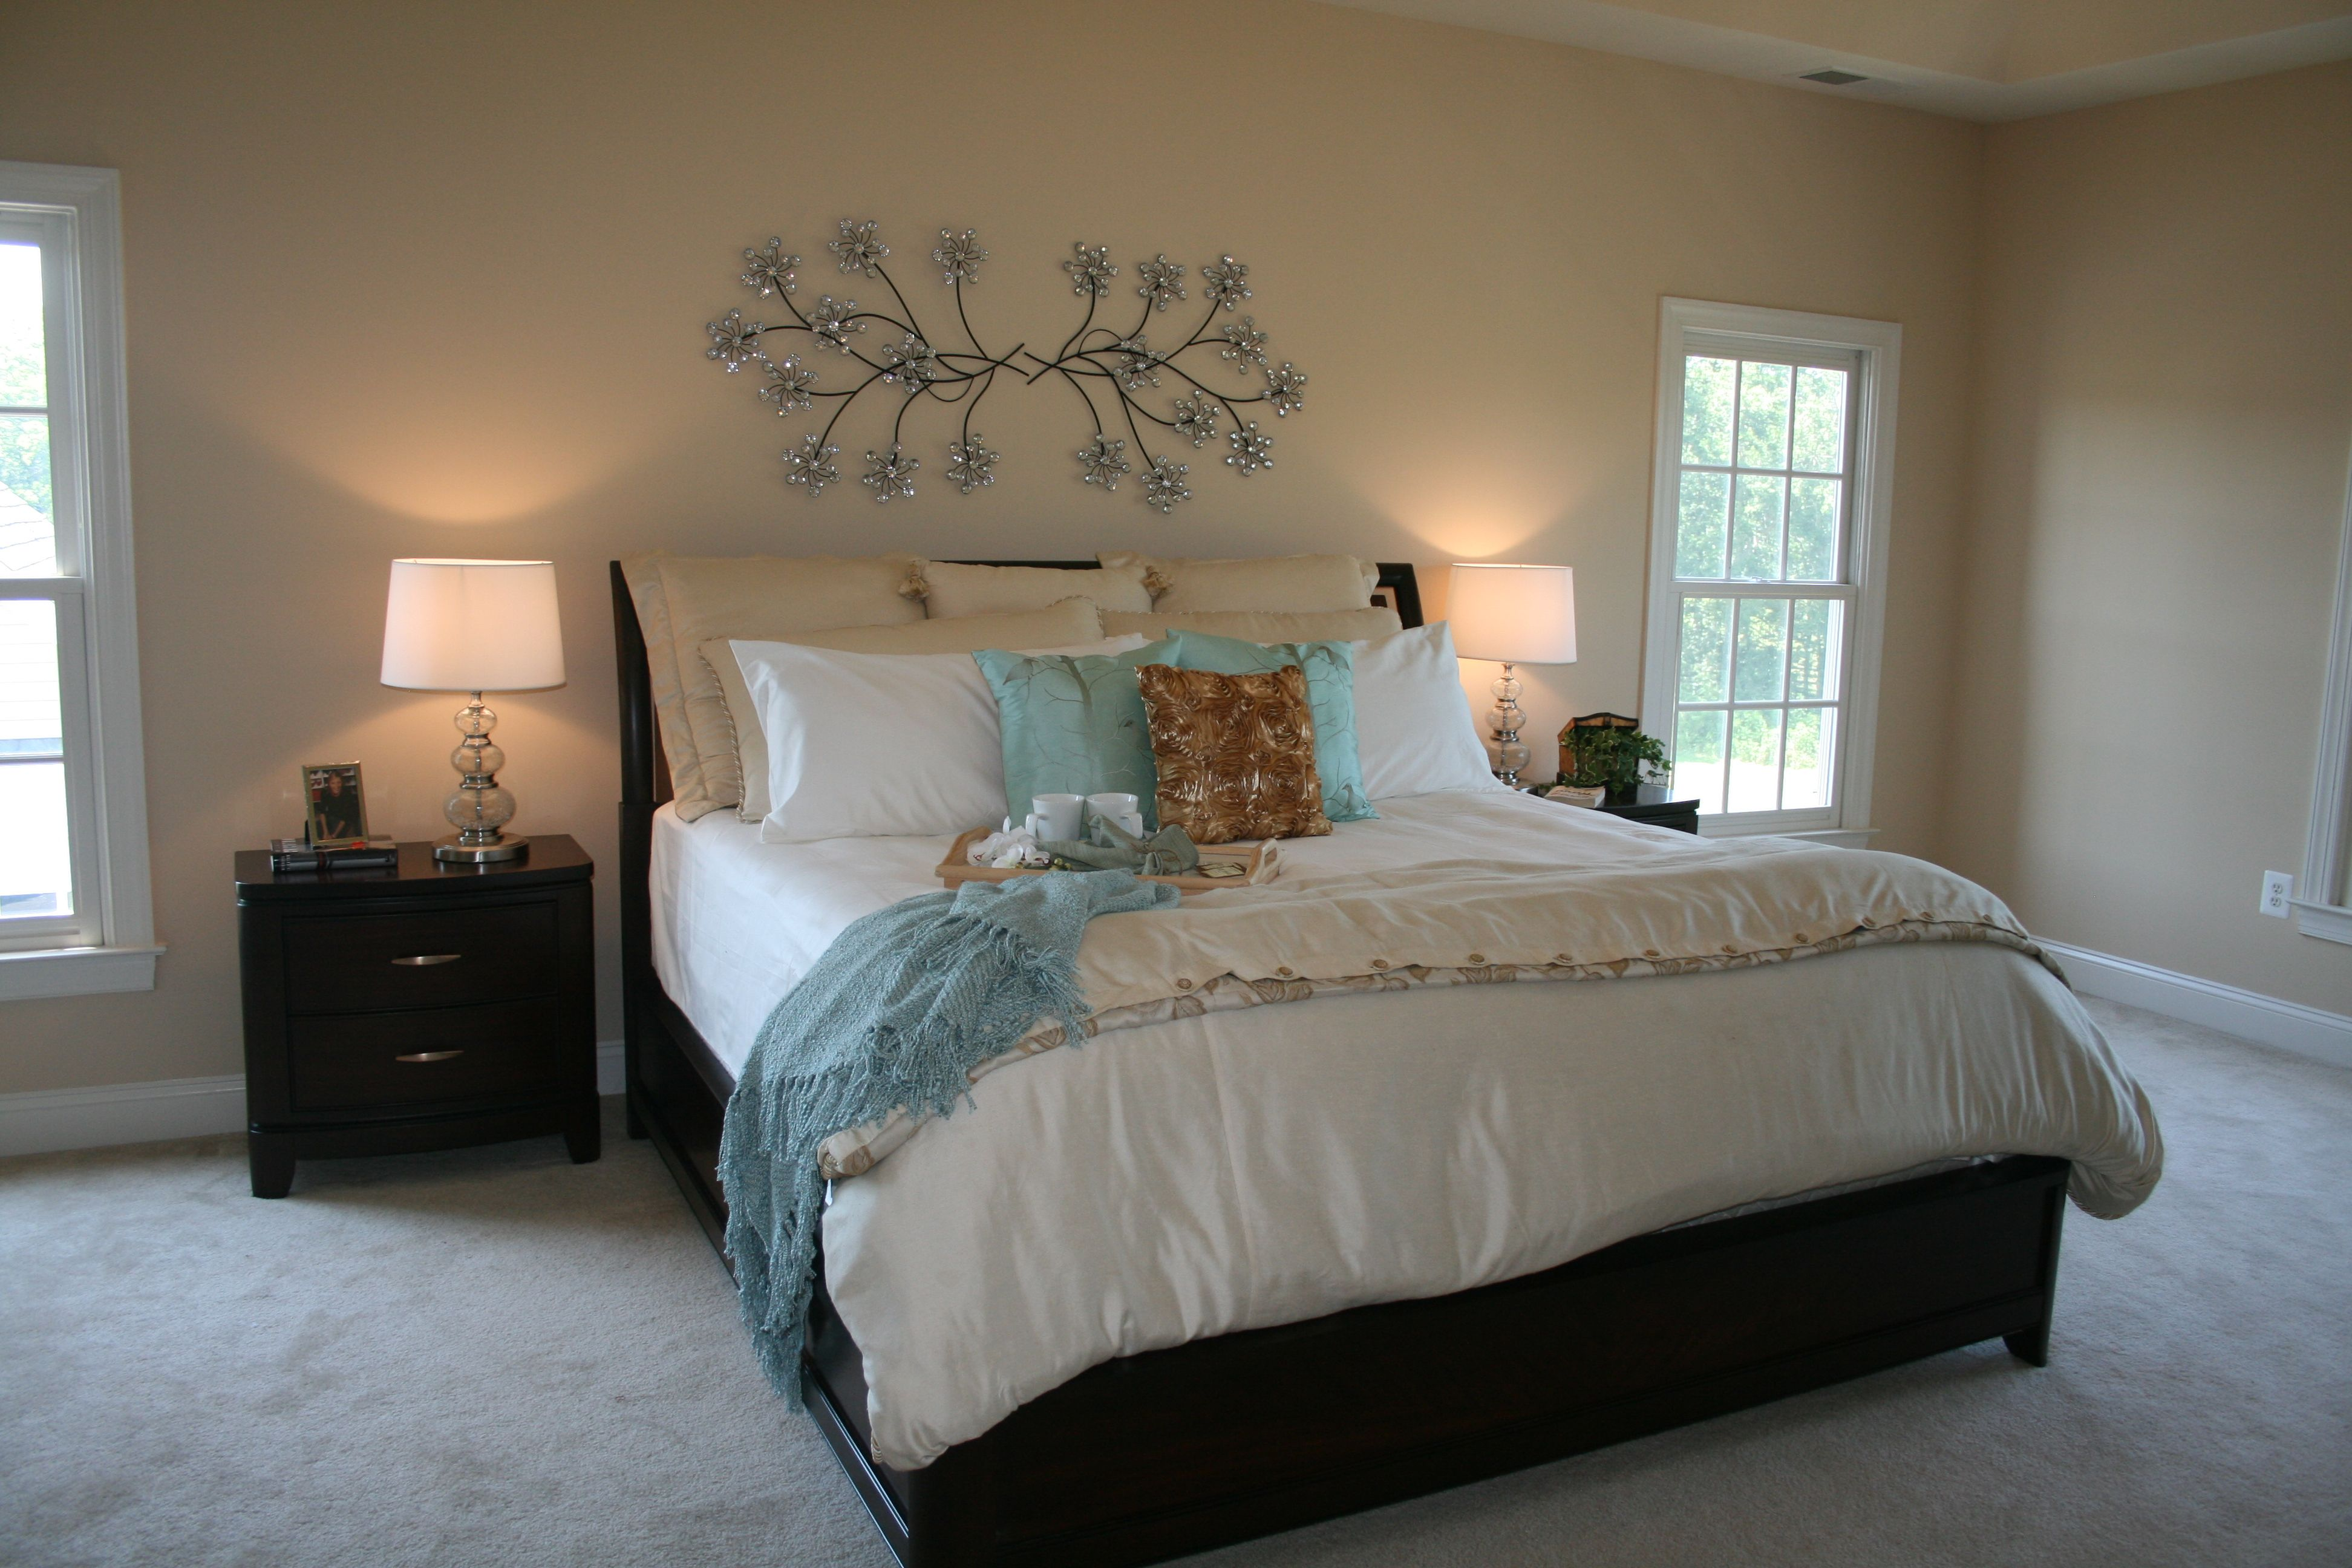 staging bedrooms   Vacant Home Staging Master Bedroom JPG. staging bedrooms   Vacant Home Staging Master Bedroom JPG   Home